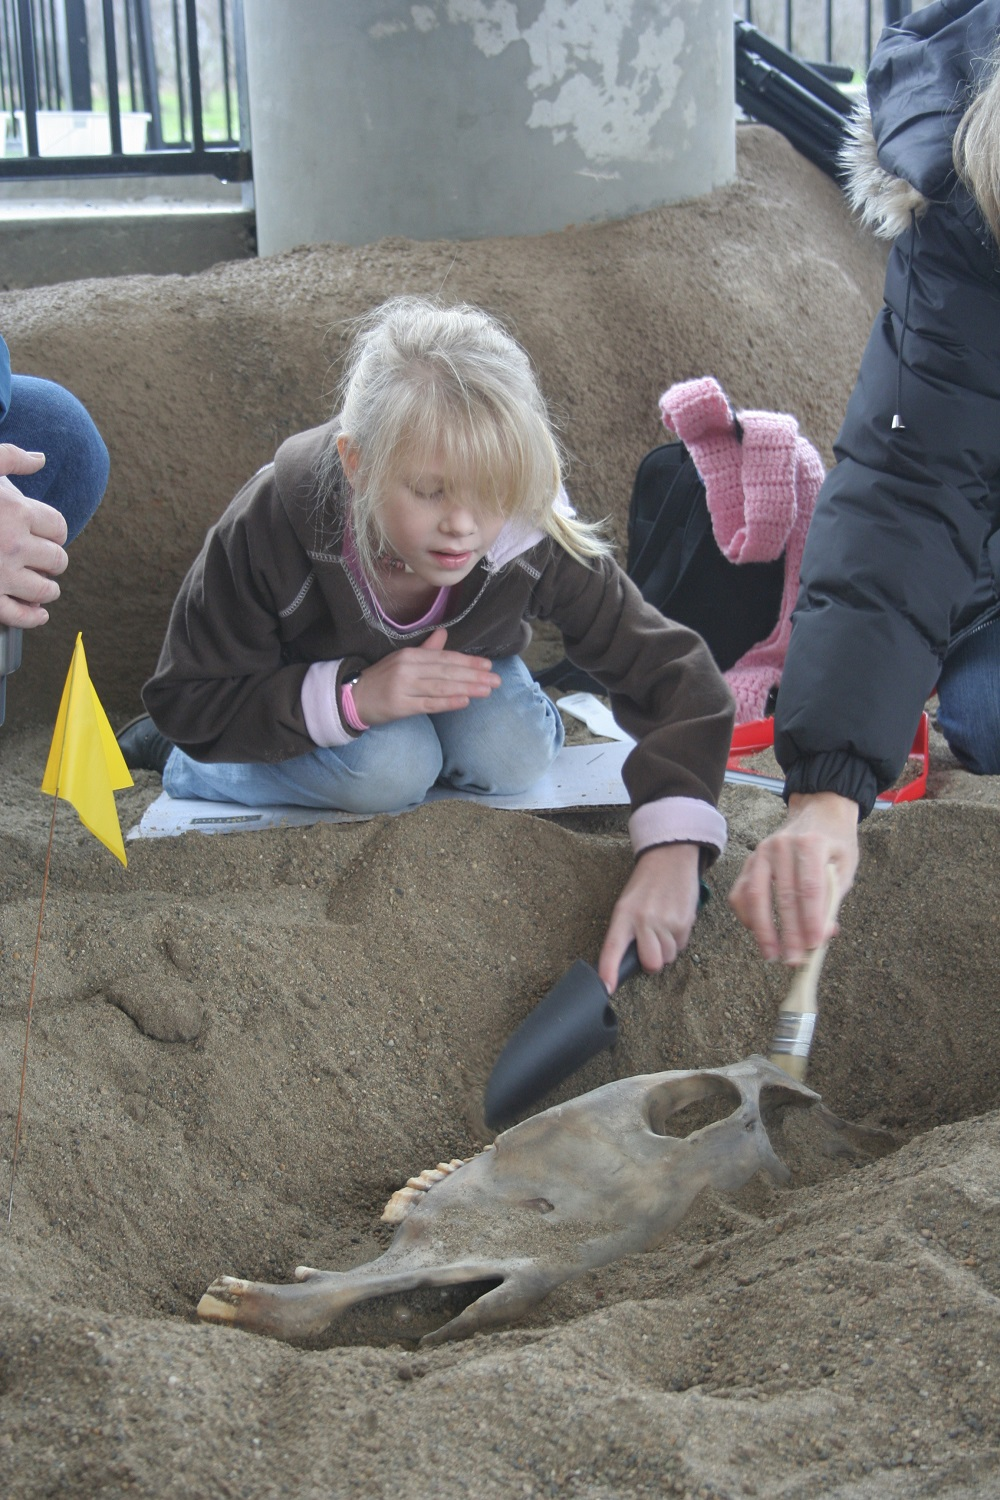 Girl in the Mock Dig where kids can uncover replica fossils of horses saber-tooth cats etc. courtesy FDC